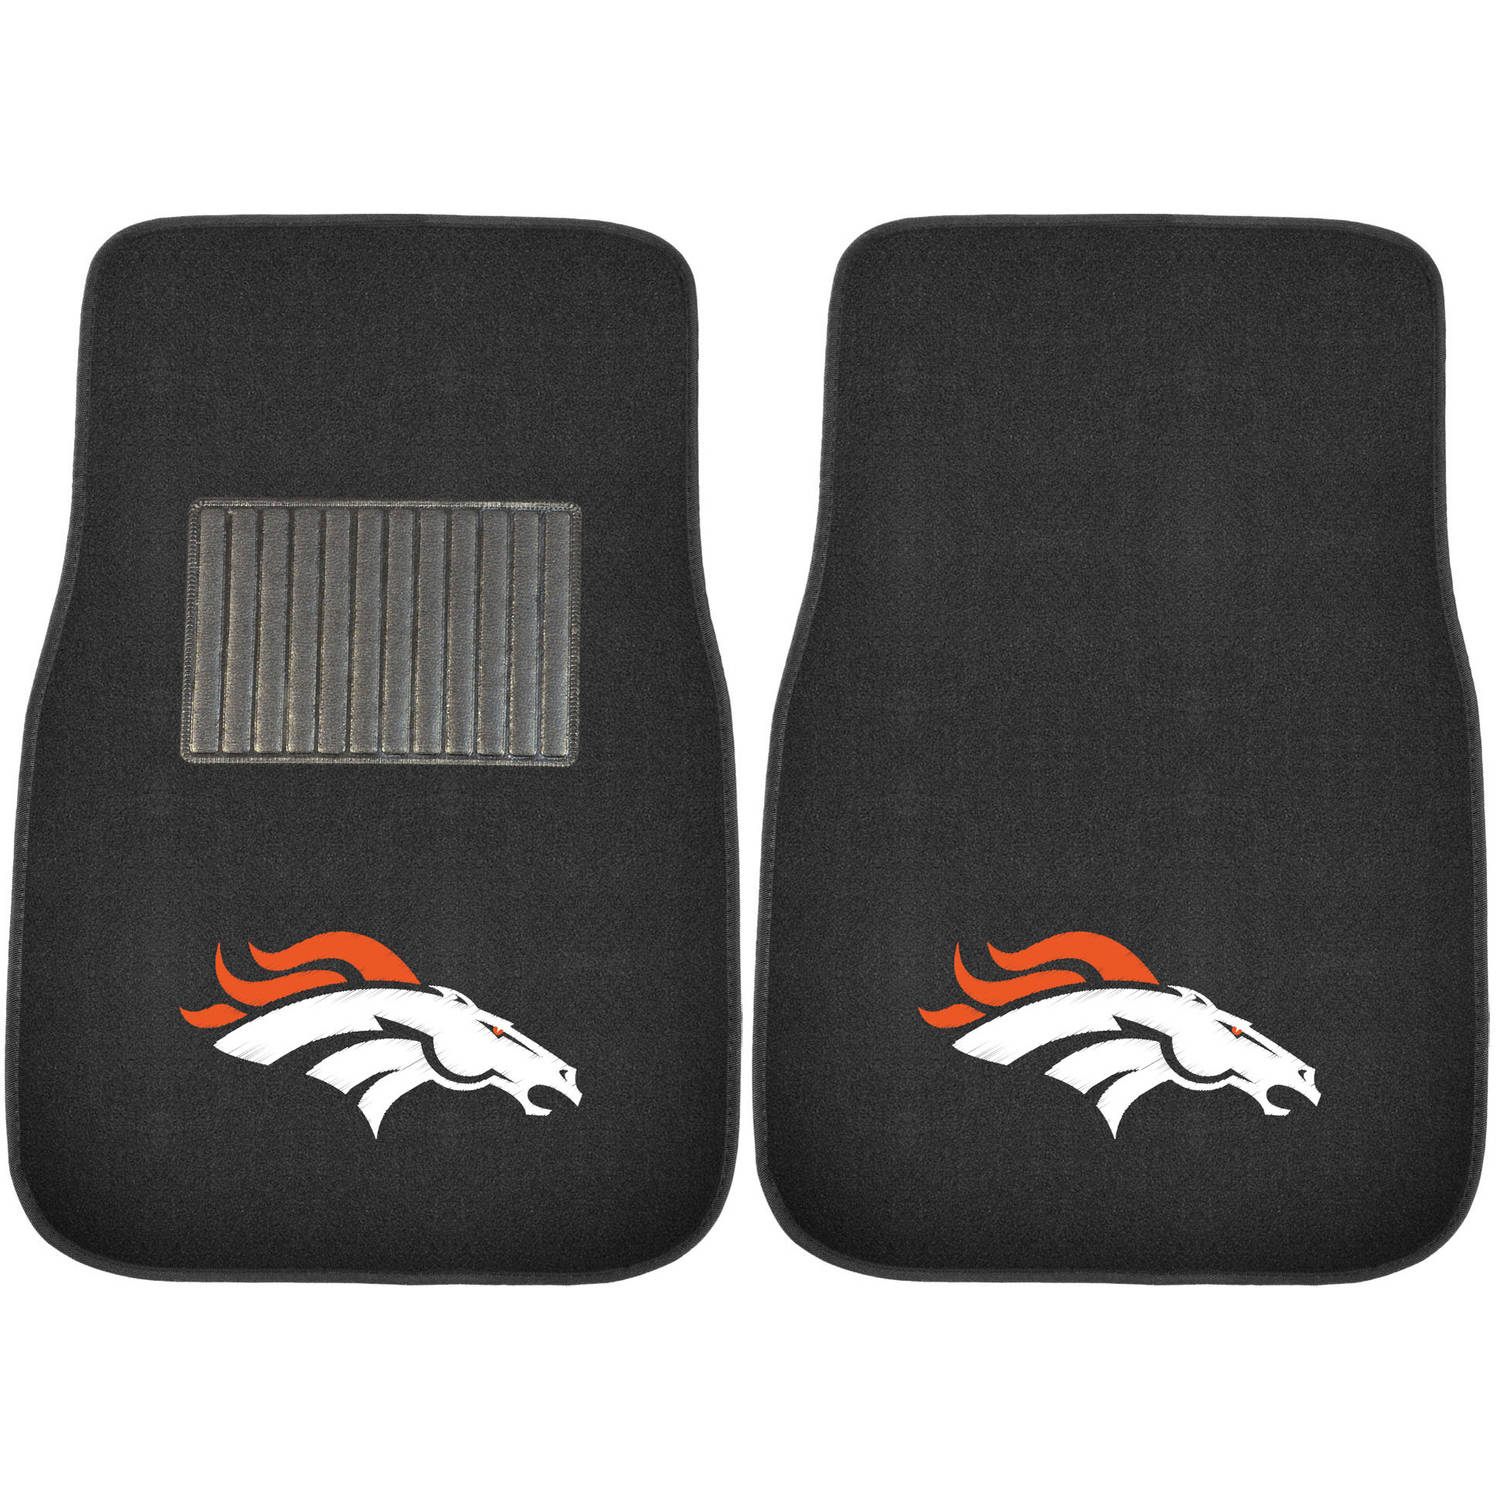 NFL Denver Broncos Embroidered Car Mats